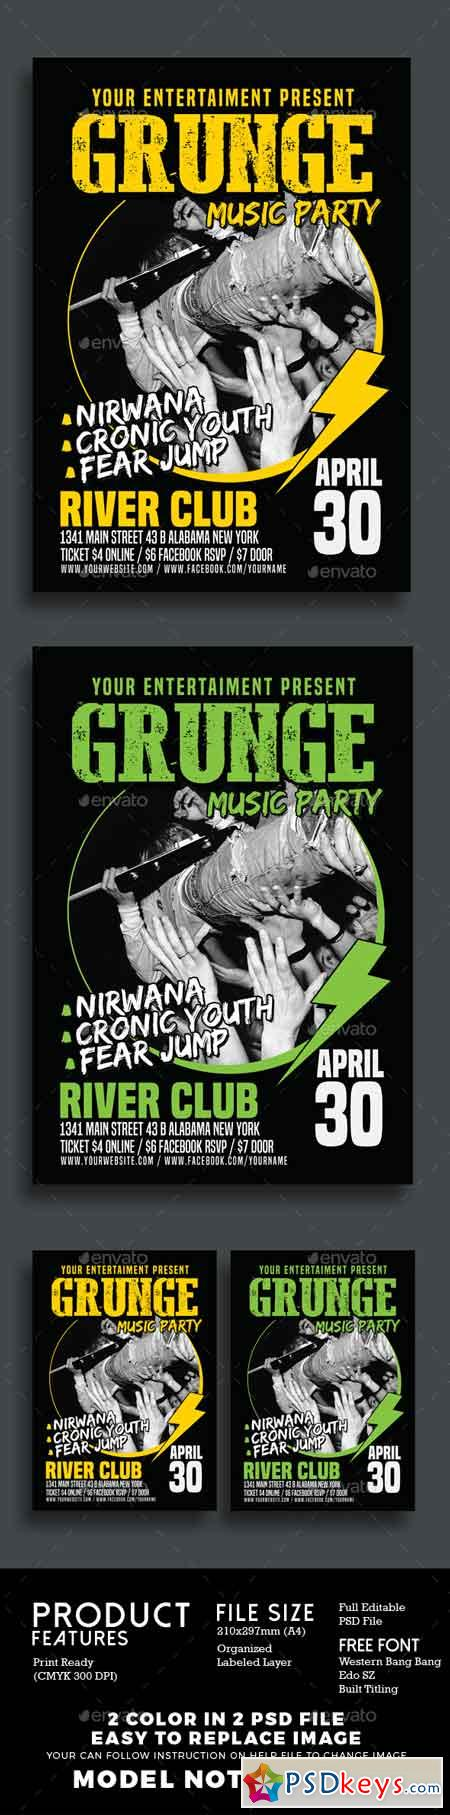 Grunge Music Party Poster Flyer 15796615